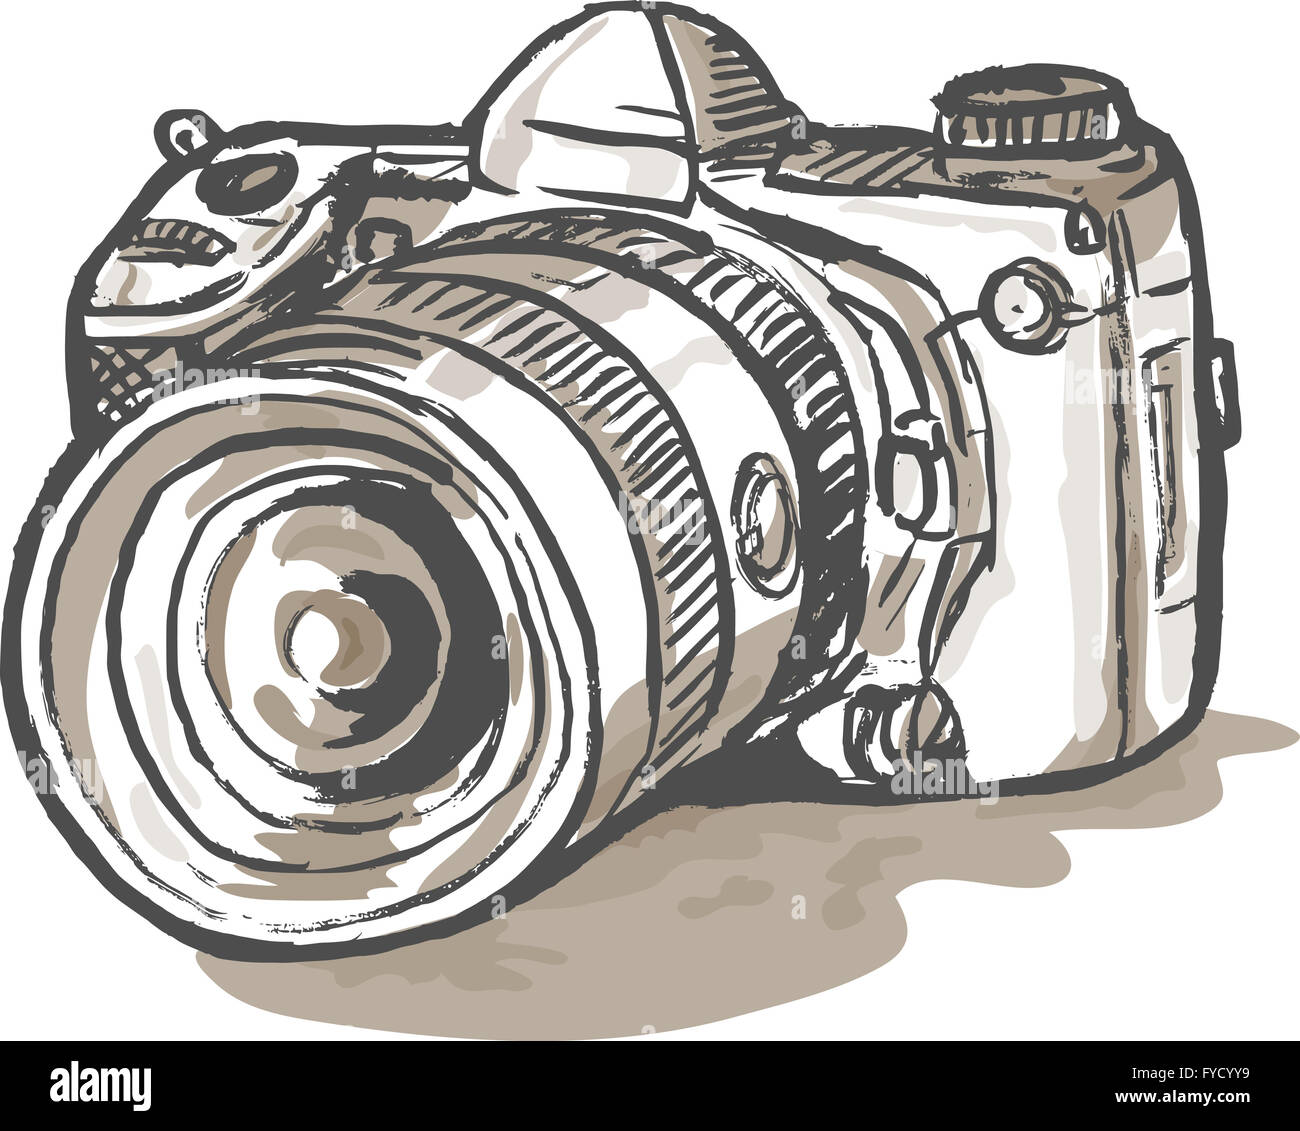 Drawing Of A Digital Slr Camera Stock Photo 102932909 Alamy Simple